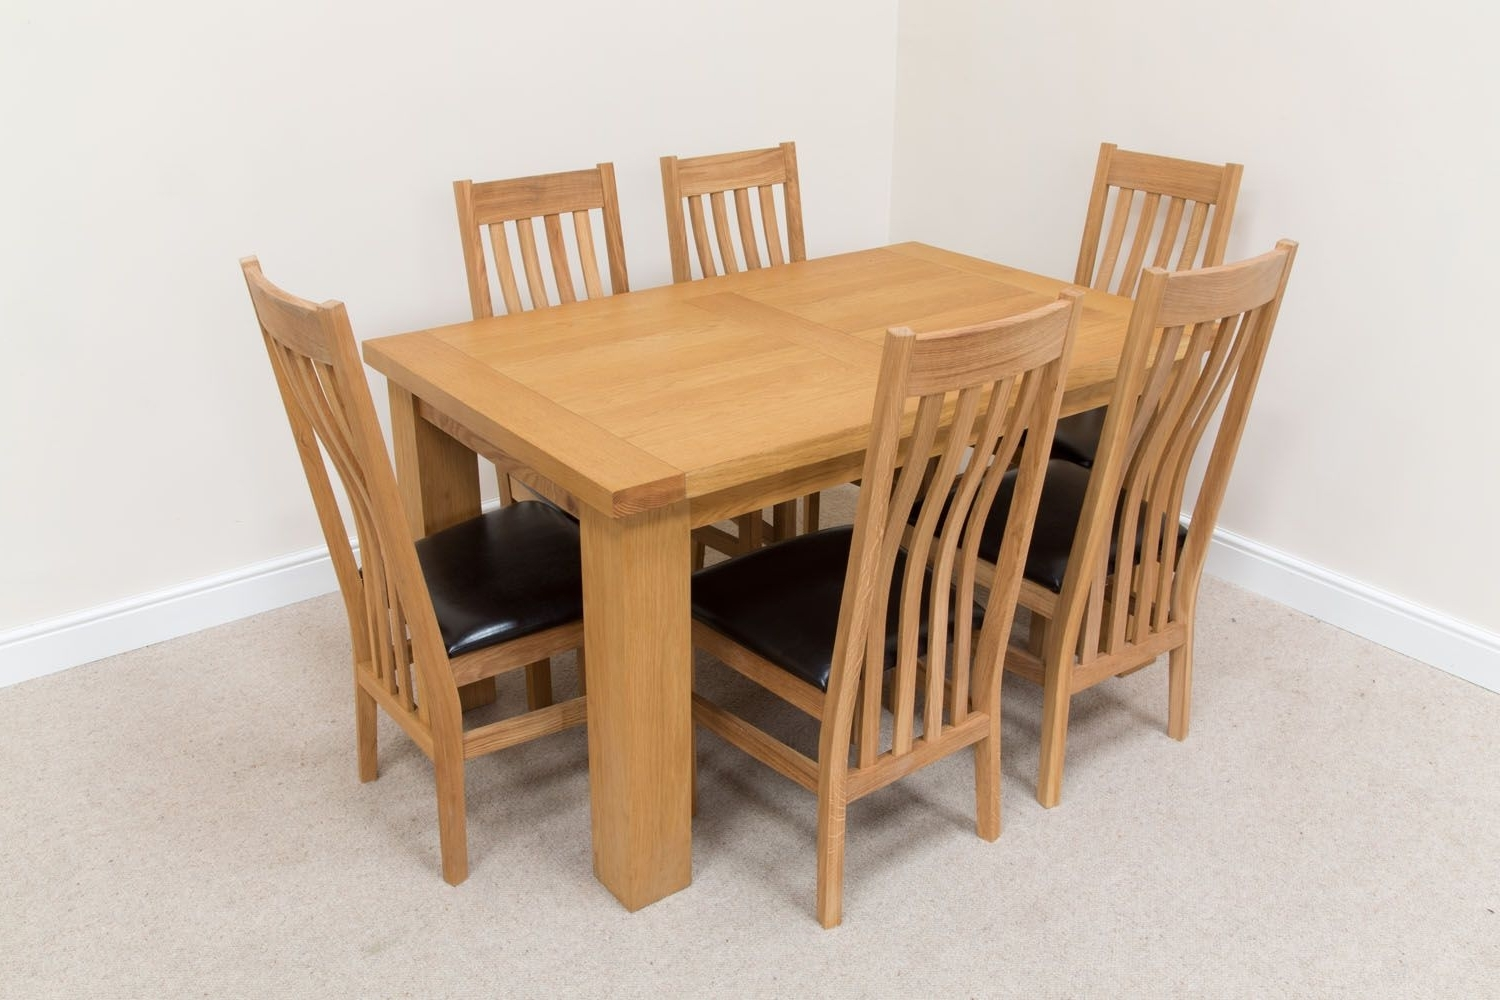 Well Known Oak Dining Tables With 6 Chairs Inside Riga 6 Seater Oak Dining Table Set Brown Leather Chairs (View 15 of 25)